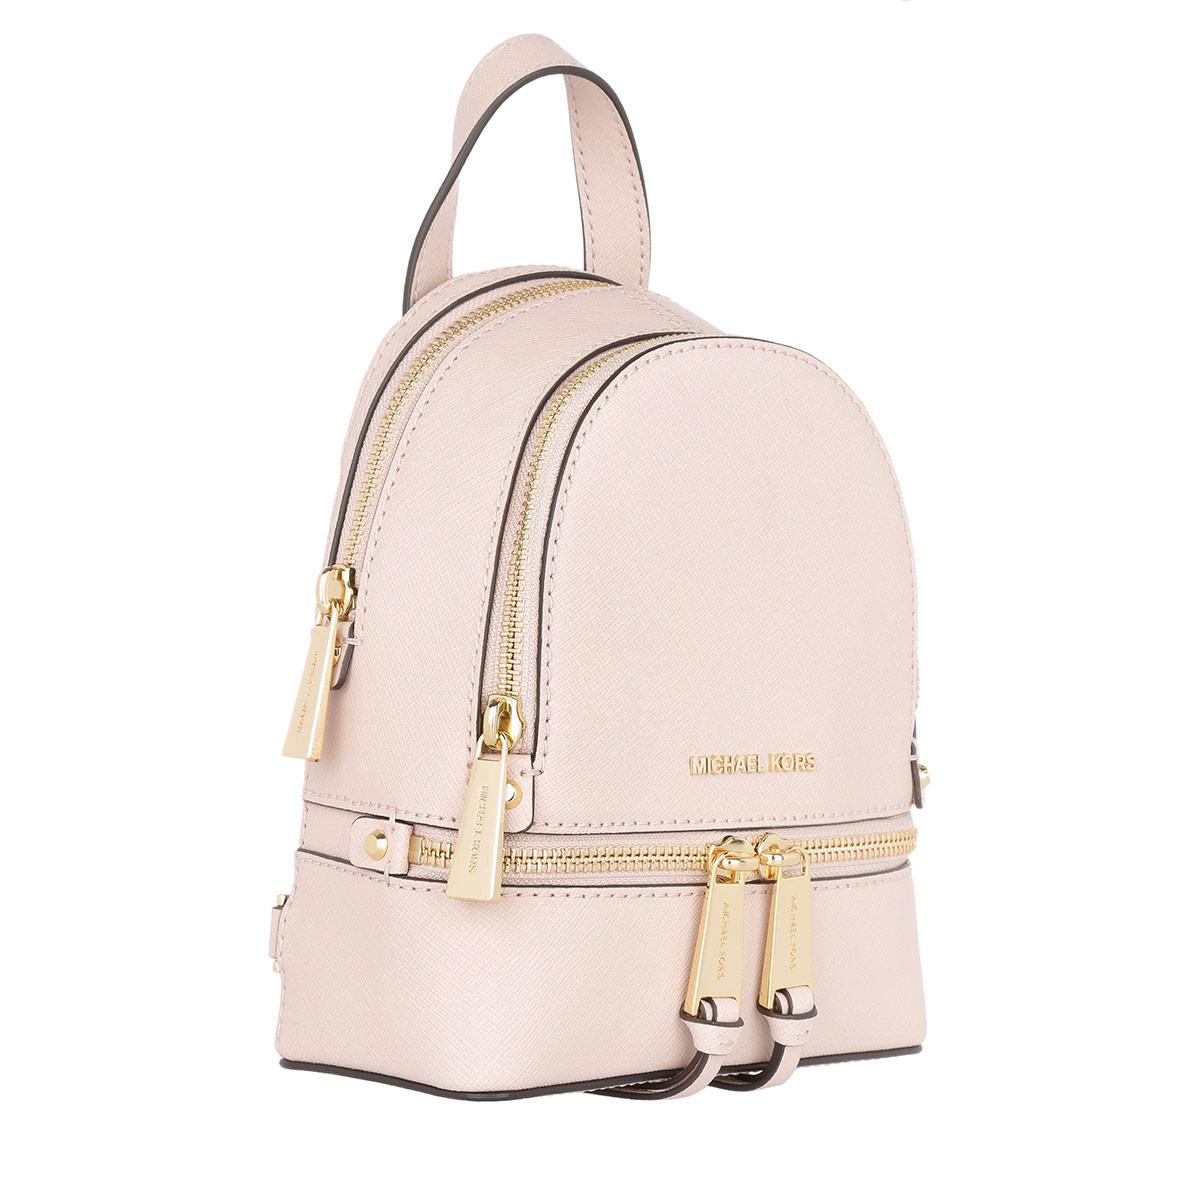 1f4ce40a0b Michael Kors Rhea Zip Xs Leather Messenger Backpack Soft Pink in ...